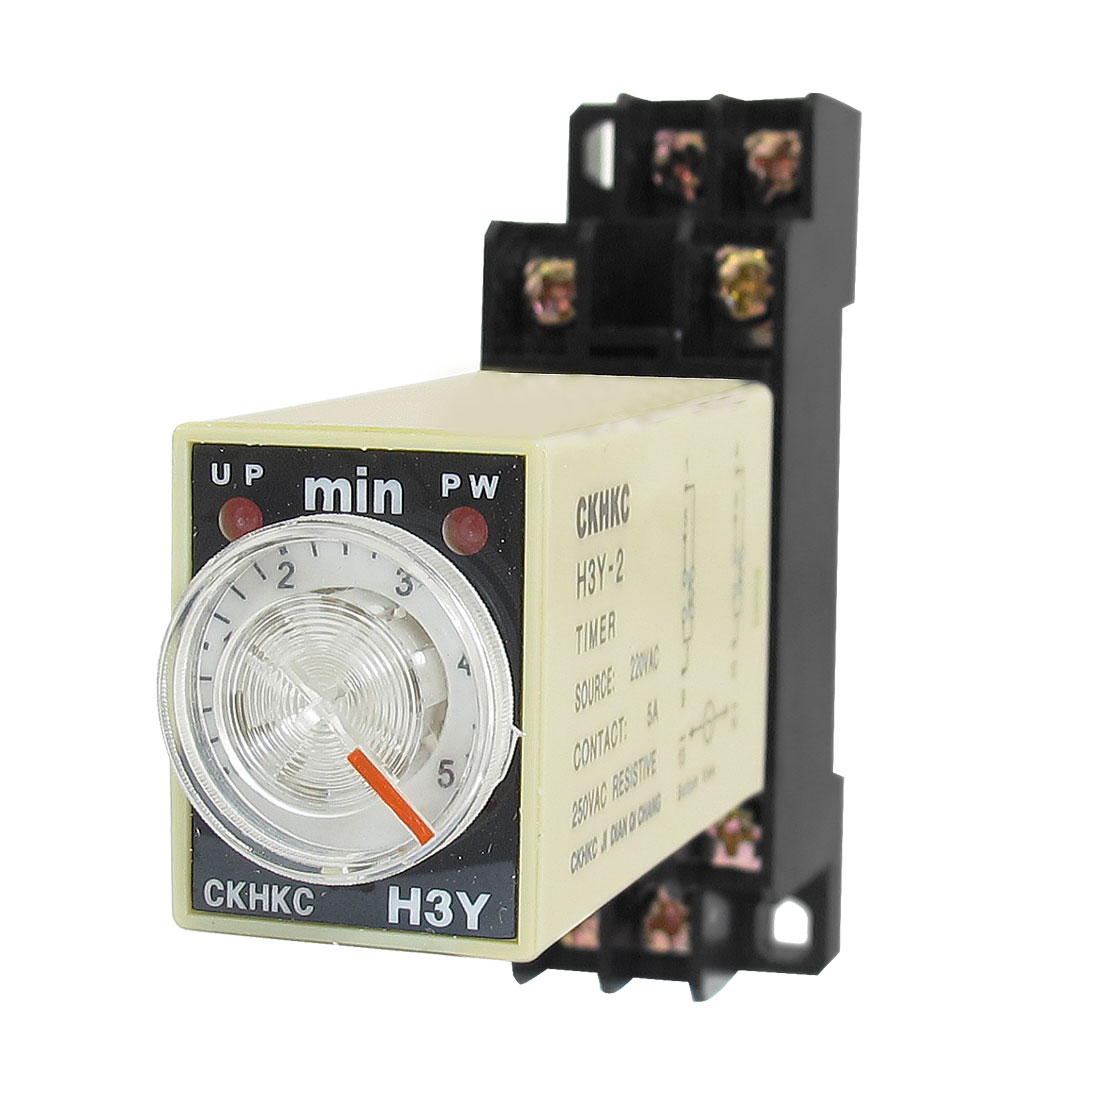 AC 220V H3Y-2 0-5 Minutes 5Min DPDT 8 Pins Power on Time Delay Relay w Socket